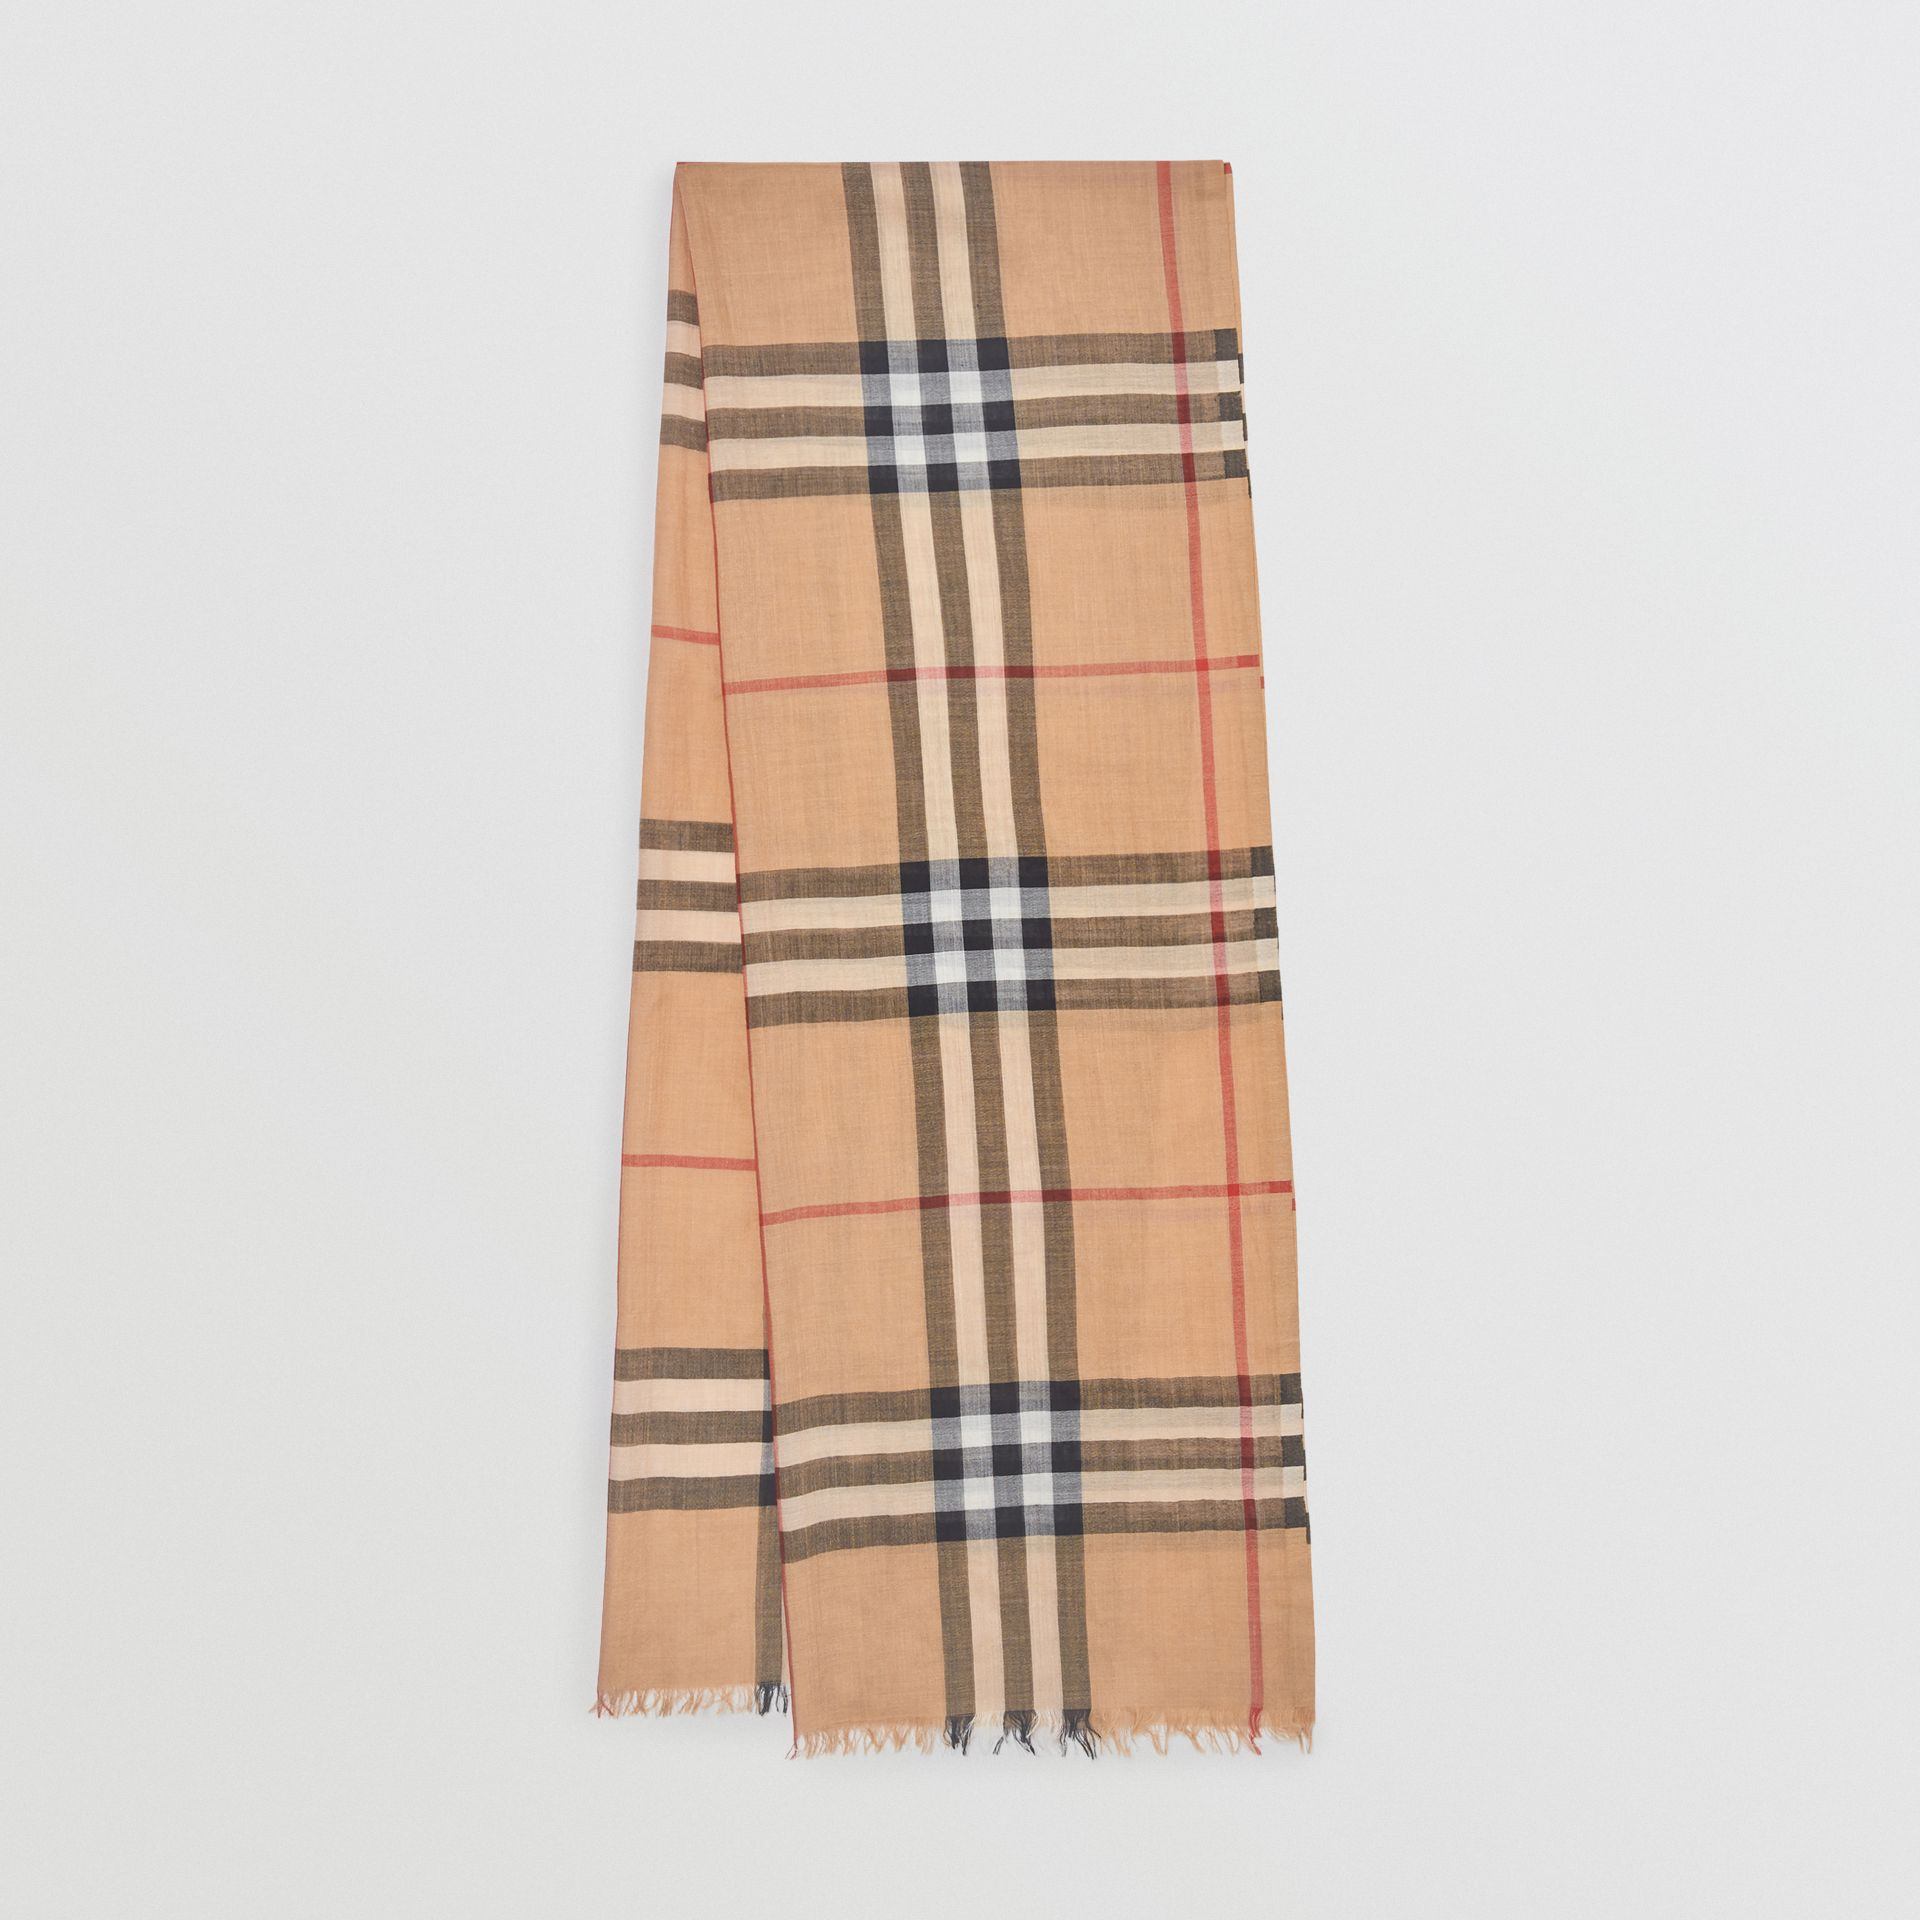 Lightweight Check Wool and Silk Scarf in Camel  fb0f5f75f8ffc